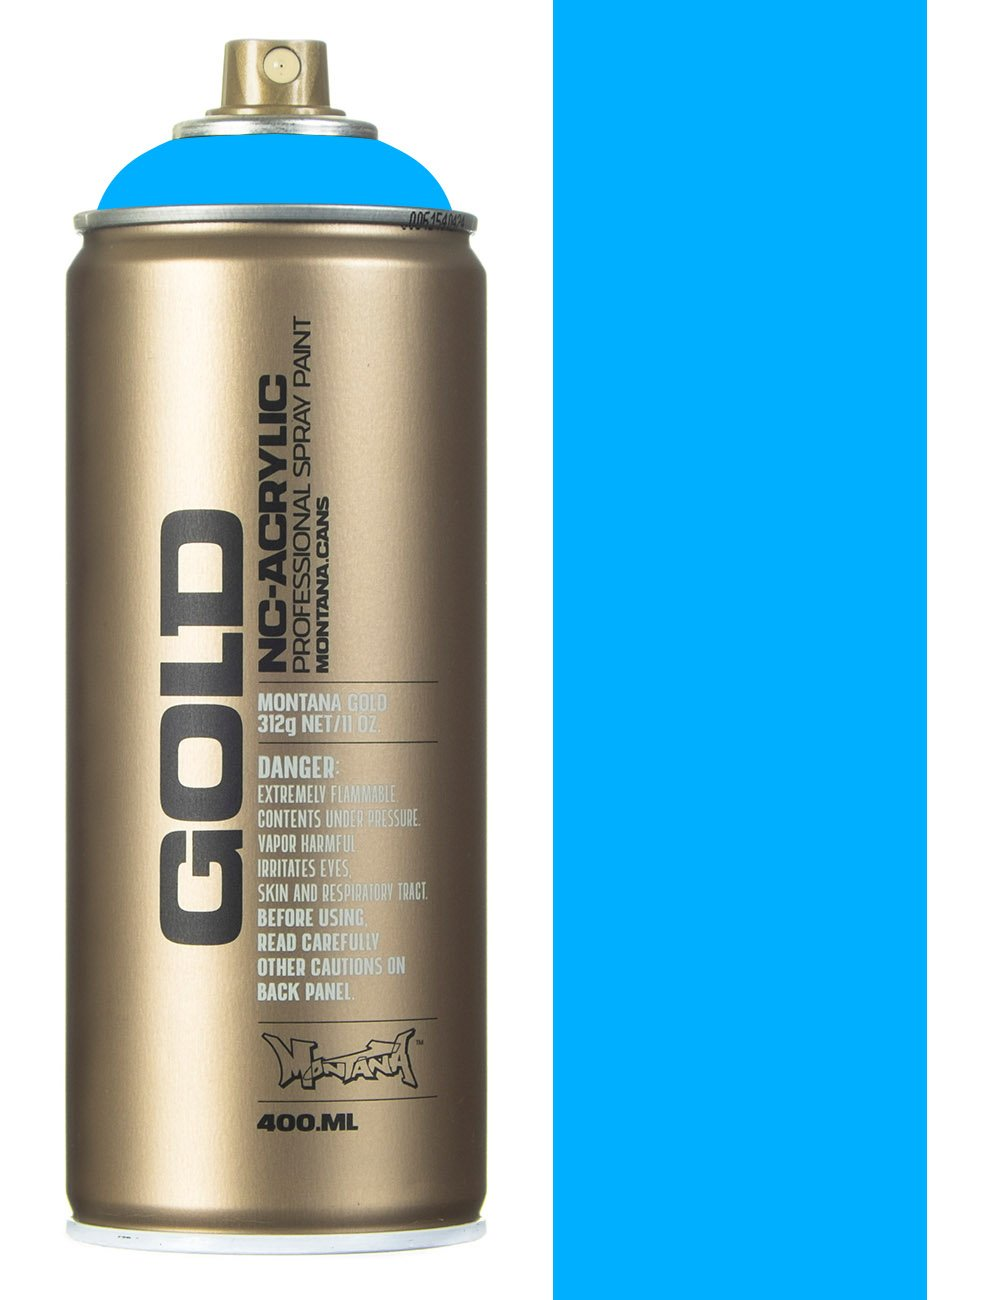 montana gold flourescent flame blue spray paint 400ml. Black Bedroom Furniture Sets. Home Design Ideas